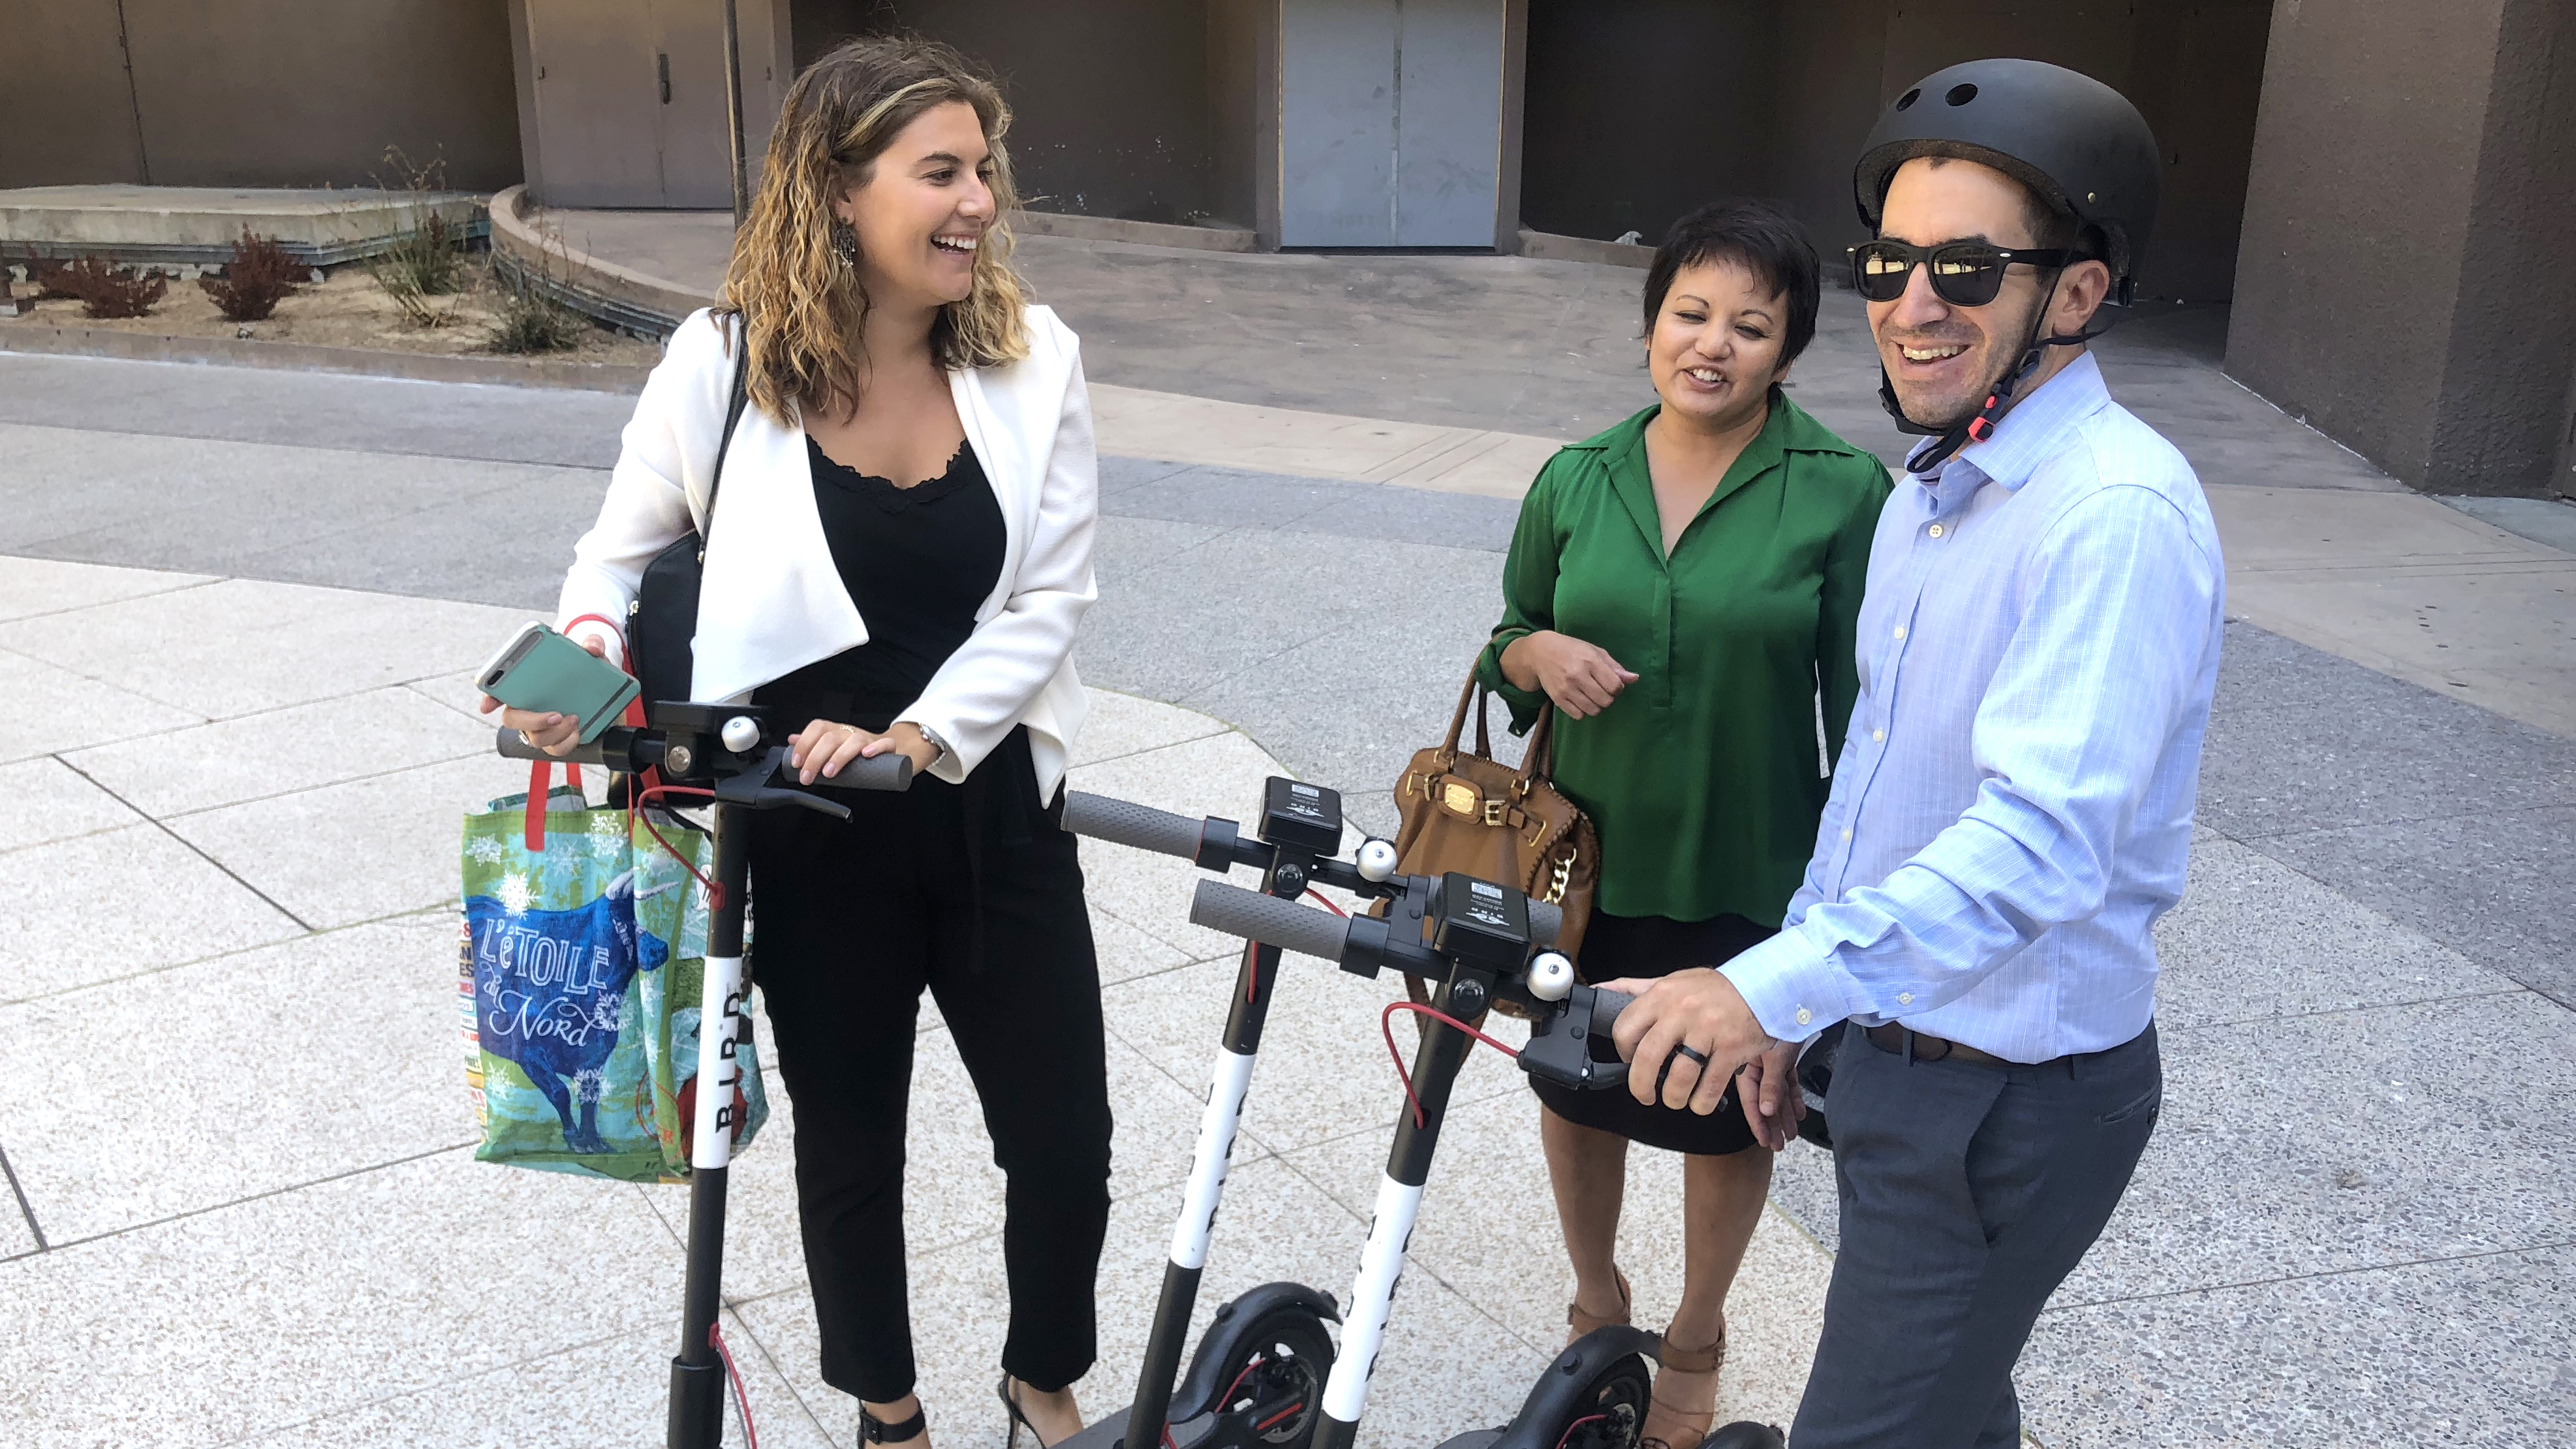 Electric Scooter Company Uses Technology To Go After